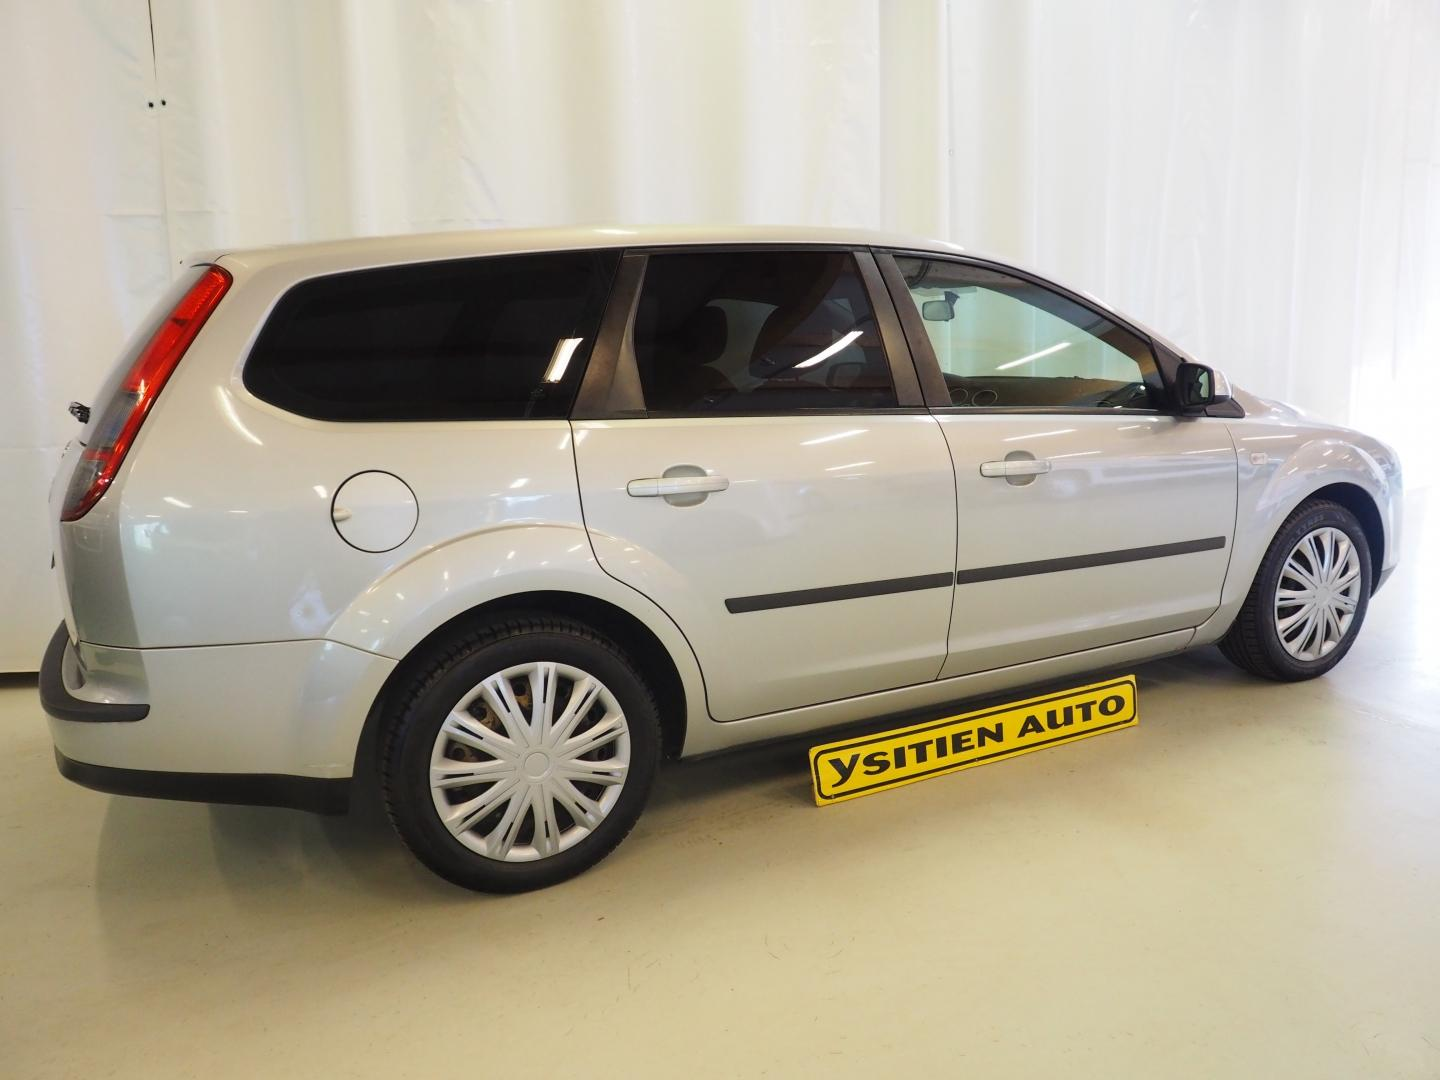 Ford Focus, 1.6 Trend Wagon